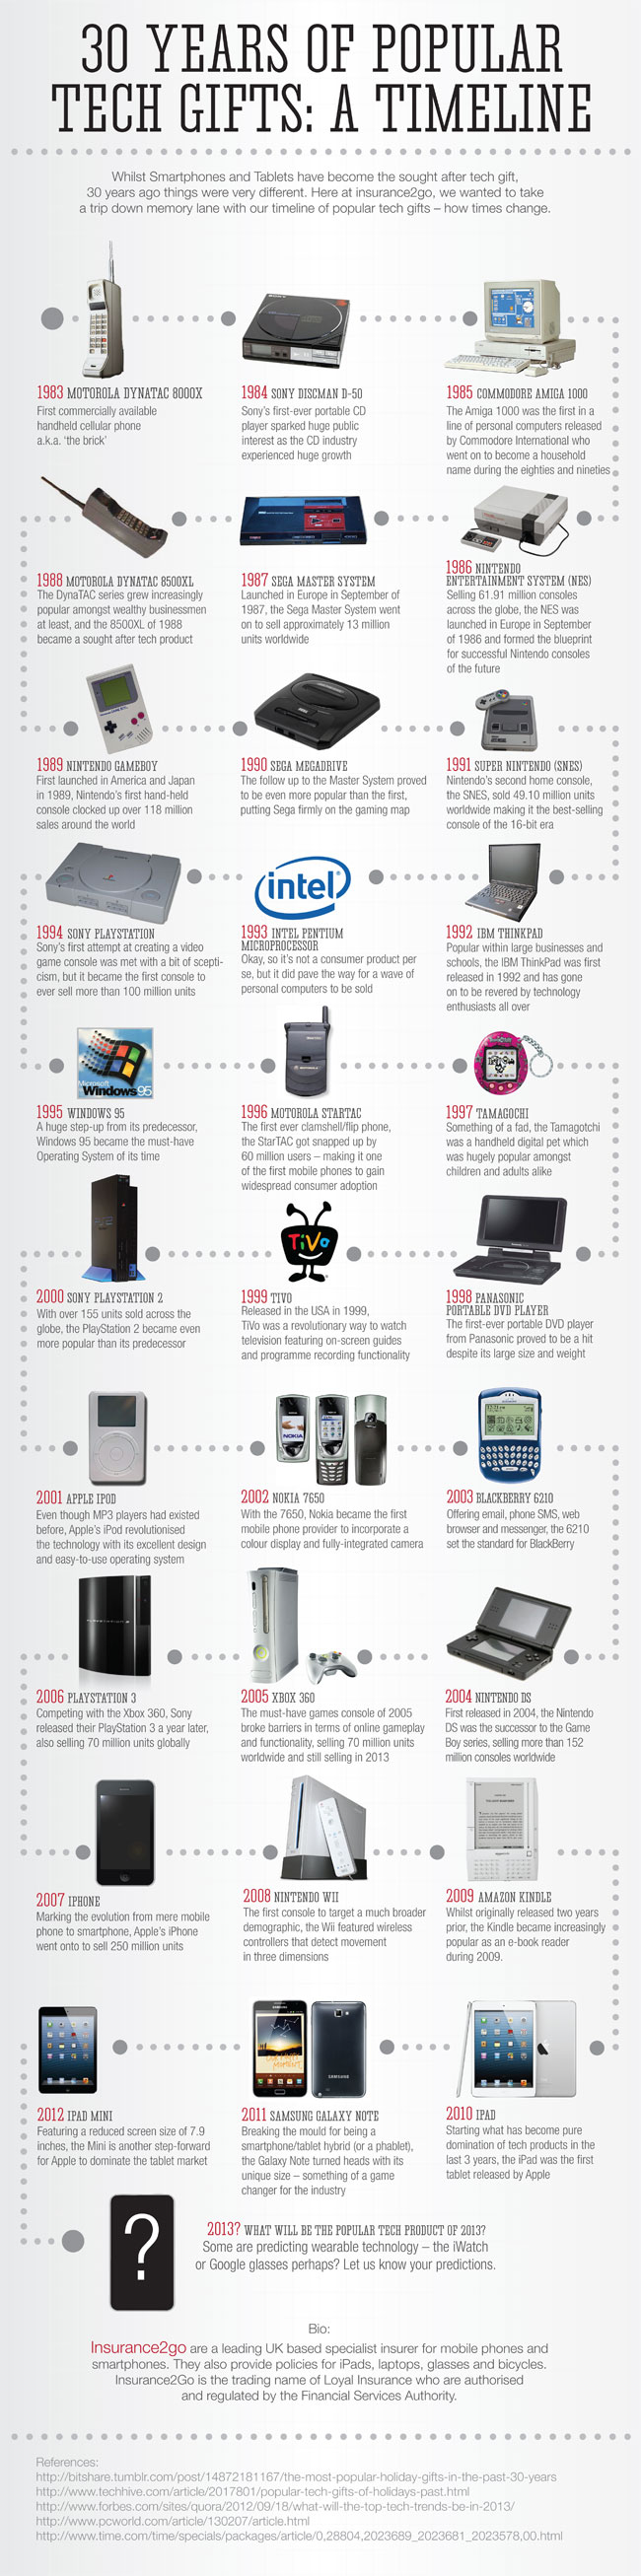 30 Years Of Popular Tech Gifts Infographic Tech Gifts Infographic Latest Technology Gadgets